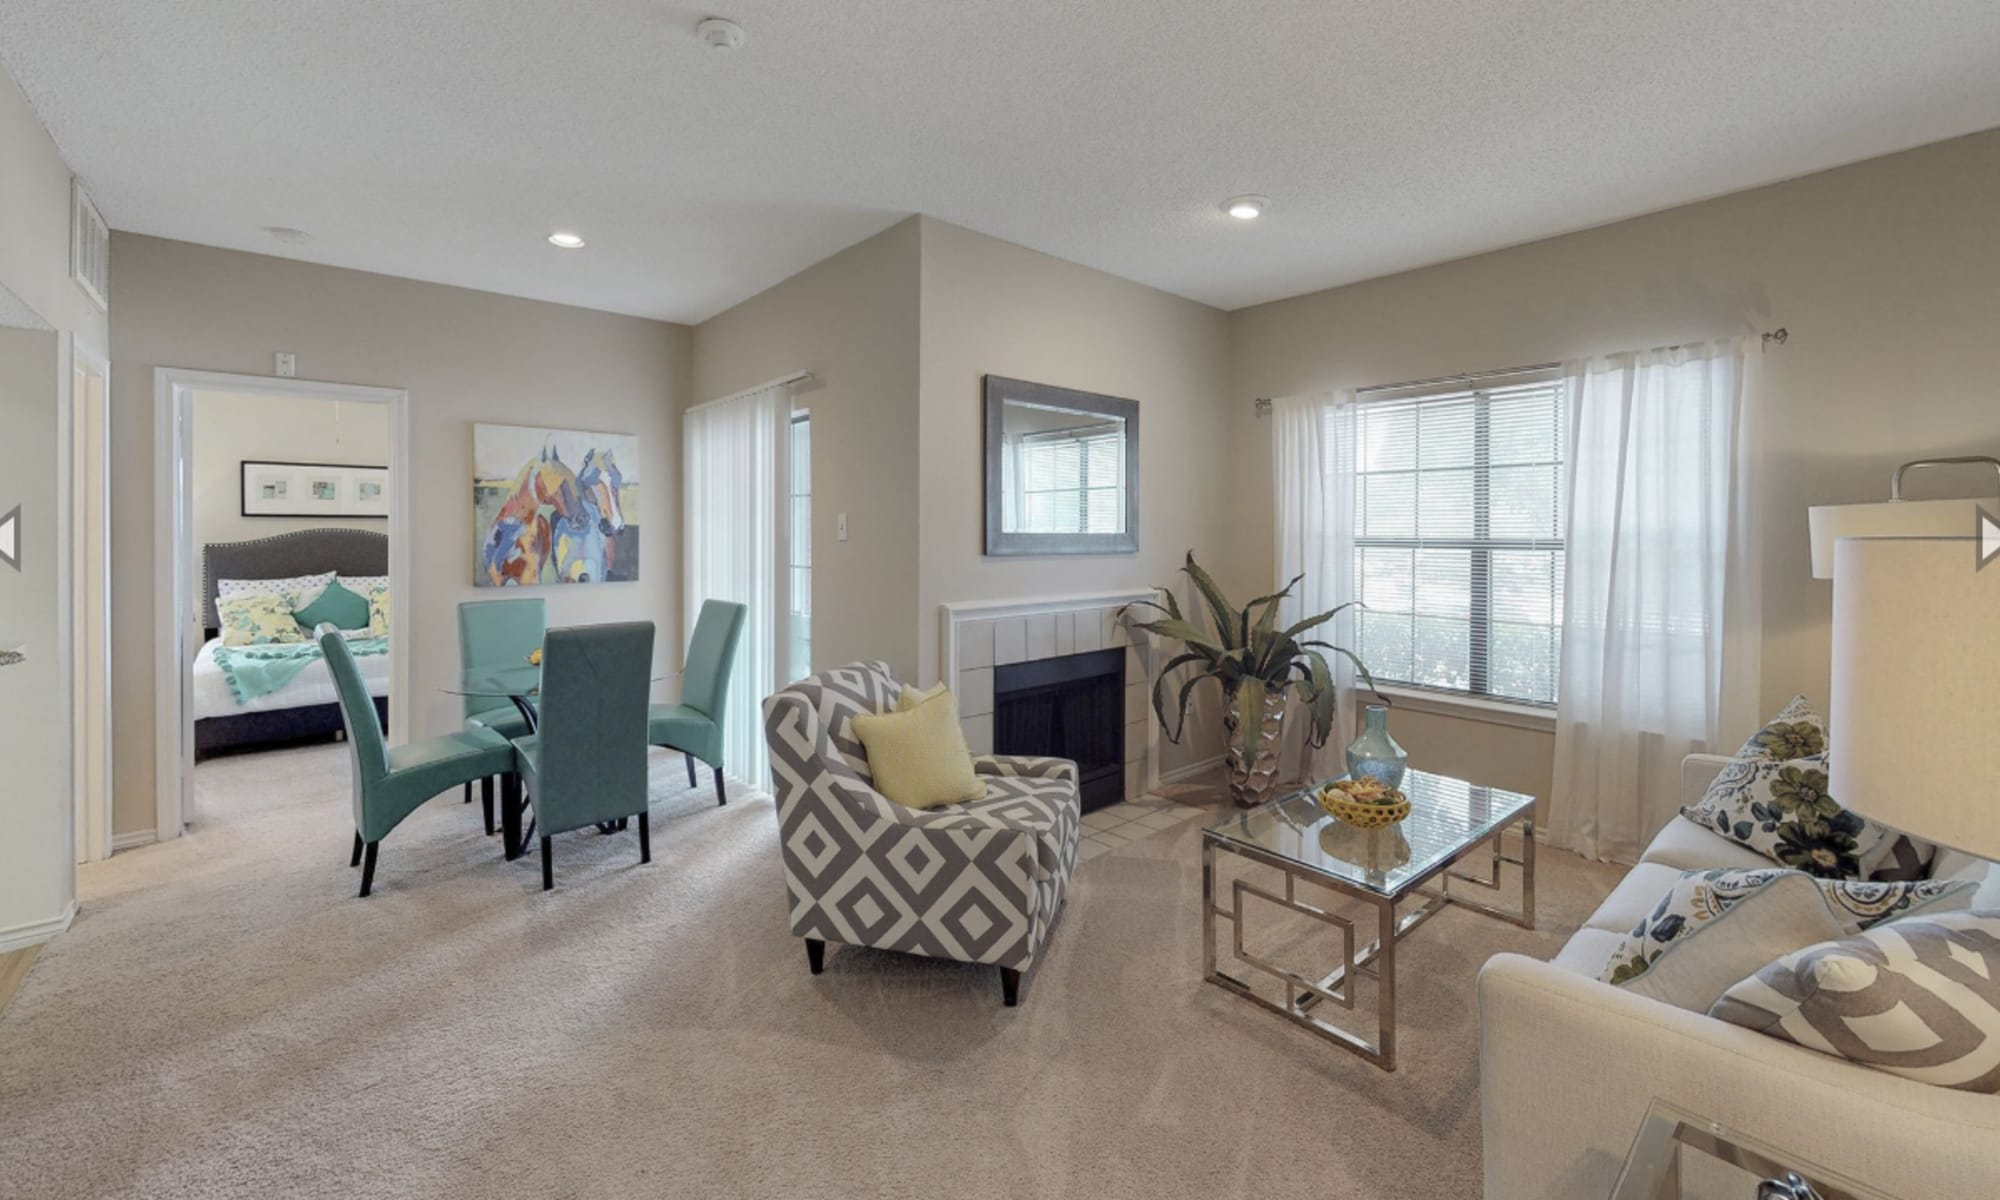 Apartments in Irving, Texas at Oaks Hackberry Creek